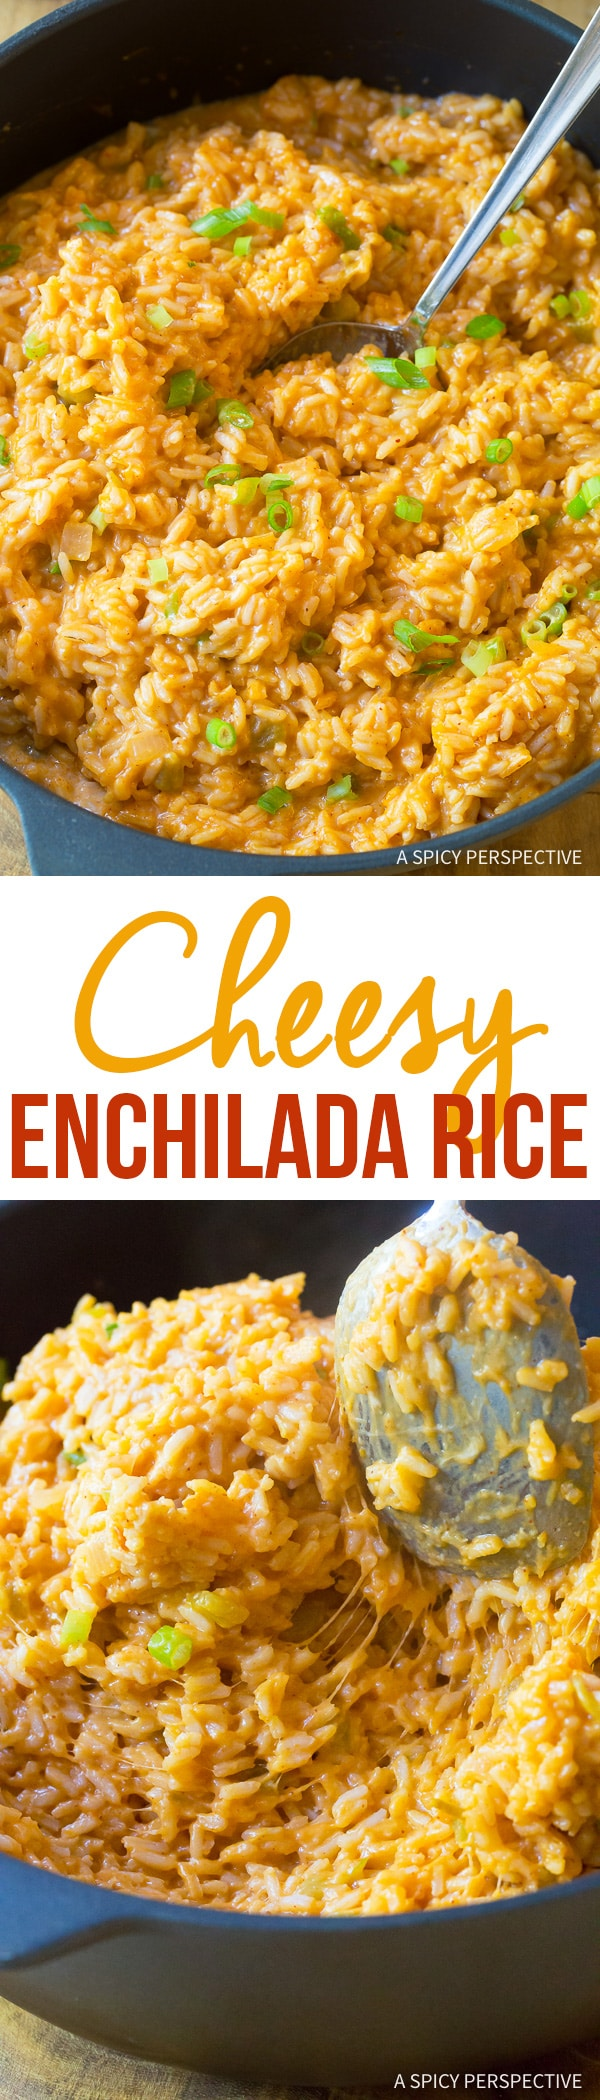 Perfect Cheesy Enchilada Rice Recipe